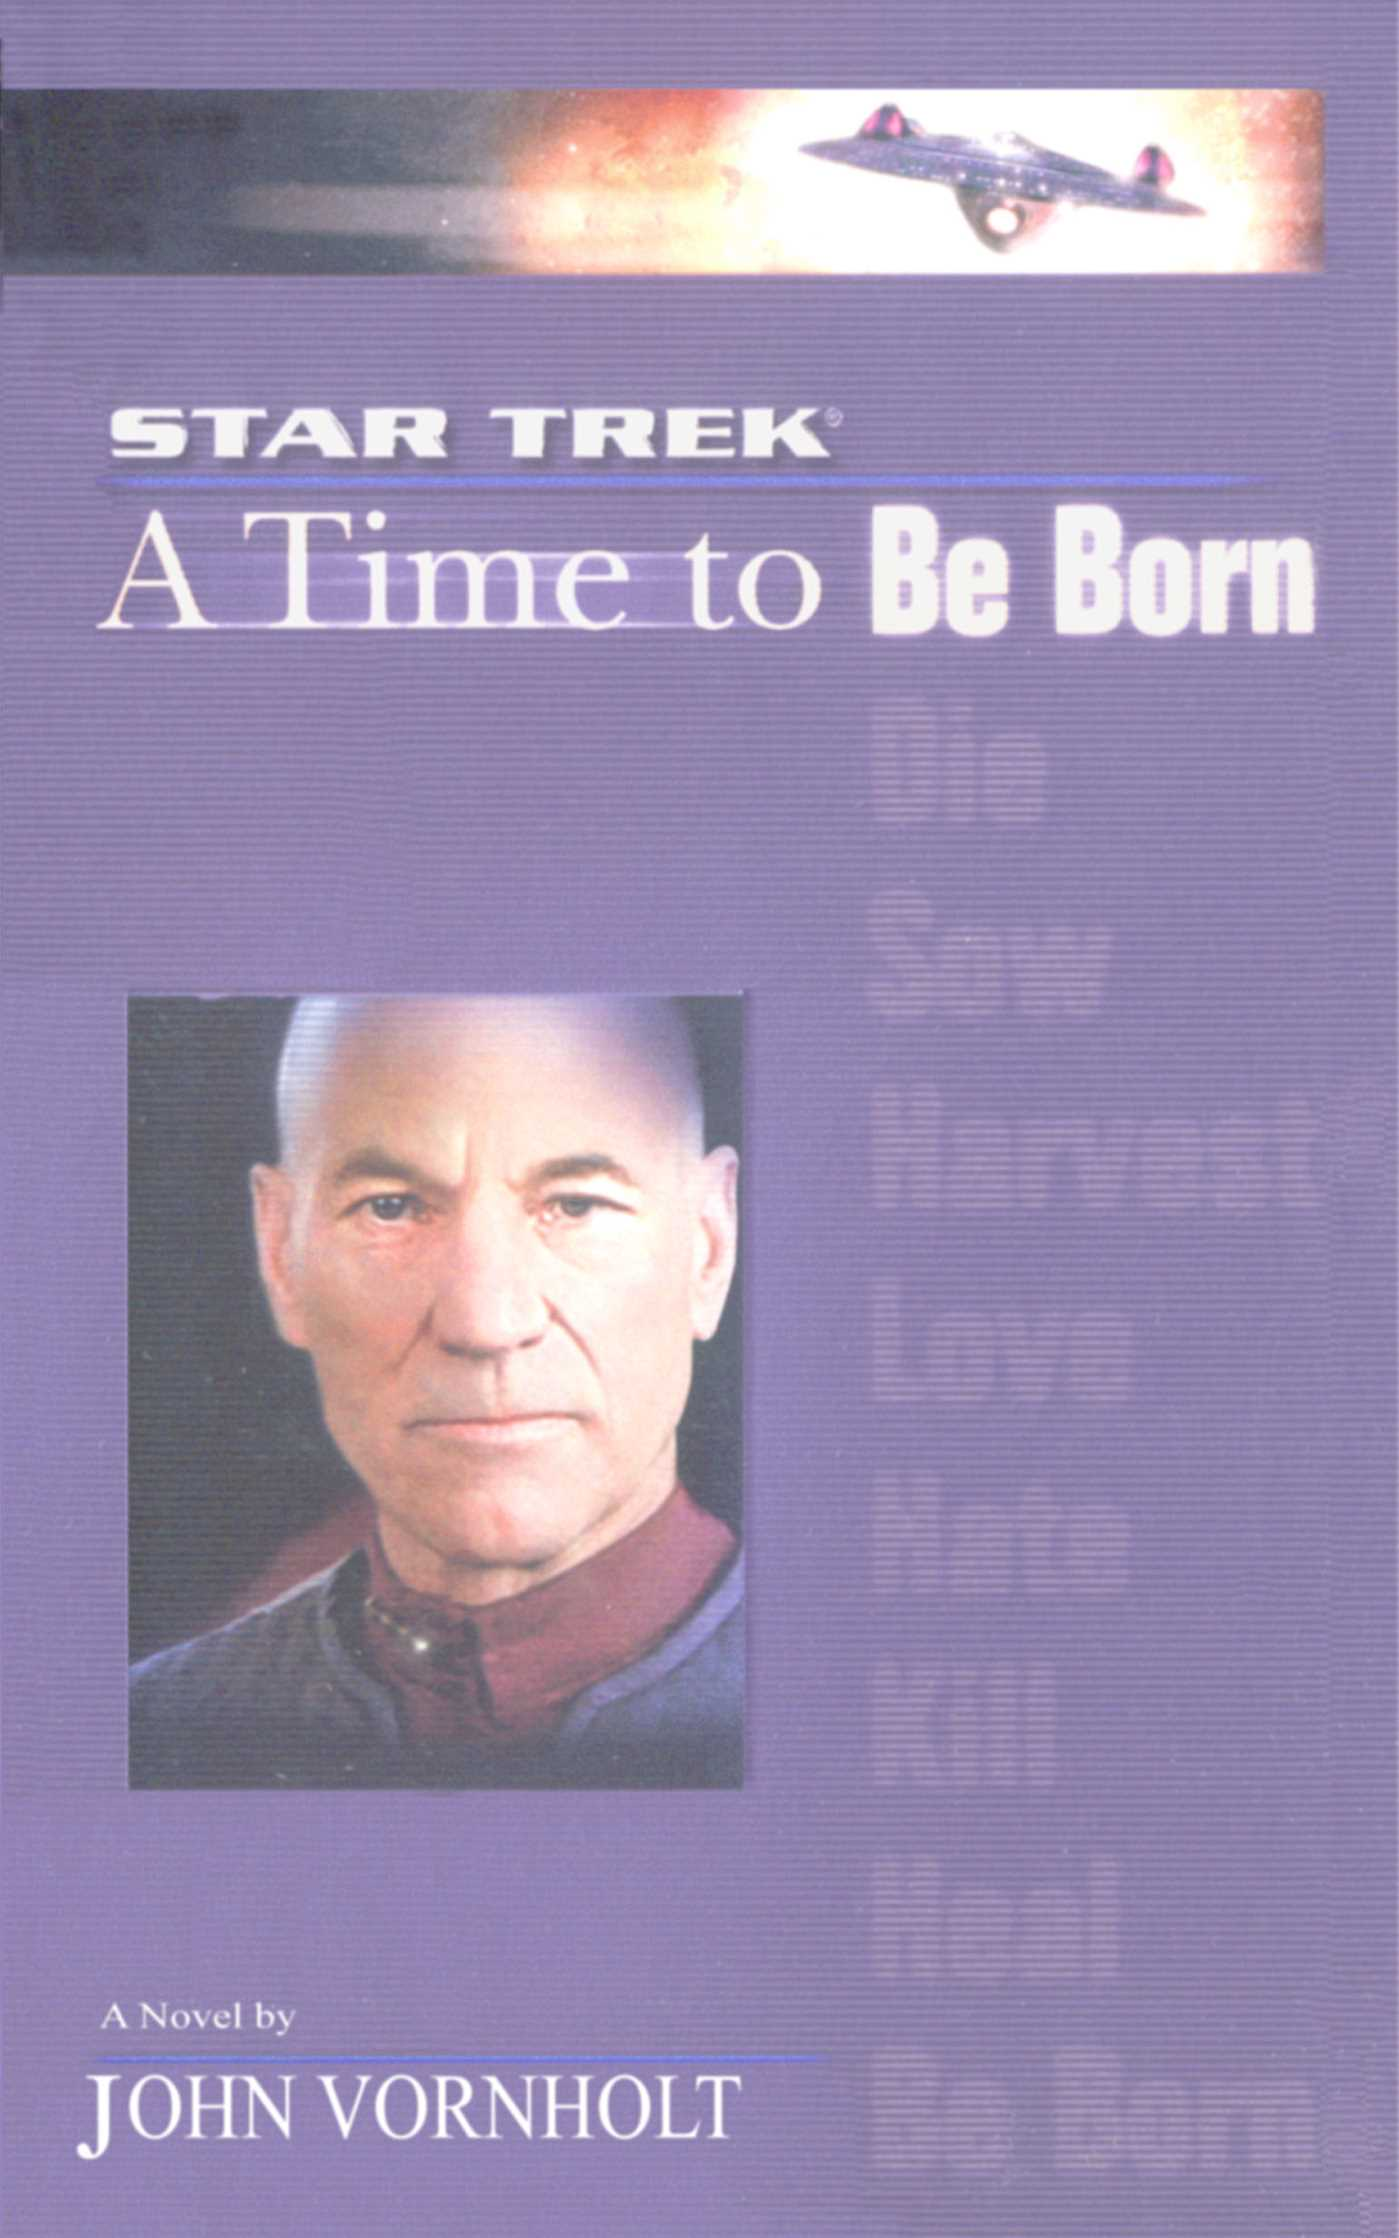 A-star-trek-the-next-generation-time-1-a-time-to-be-born-9780743491495_hr